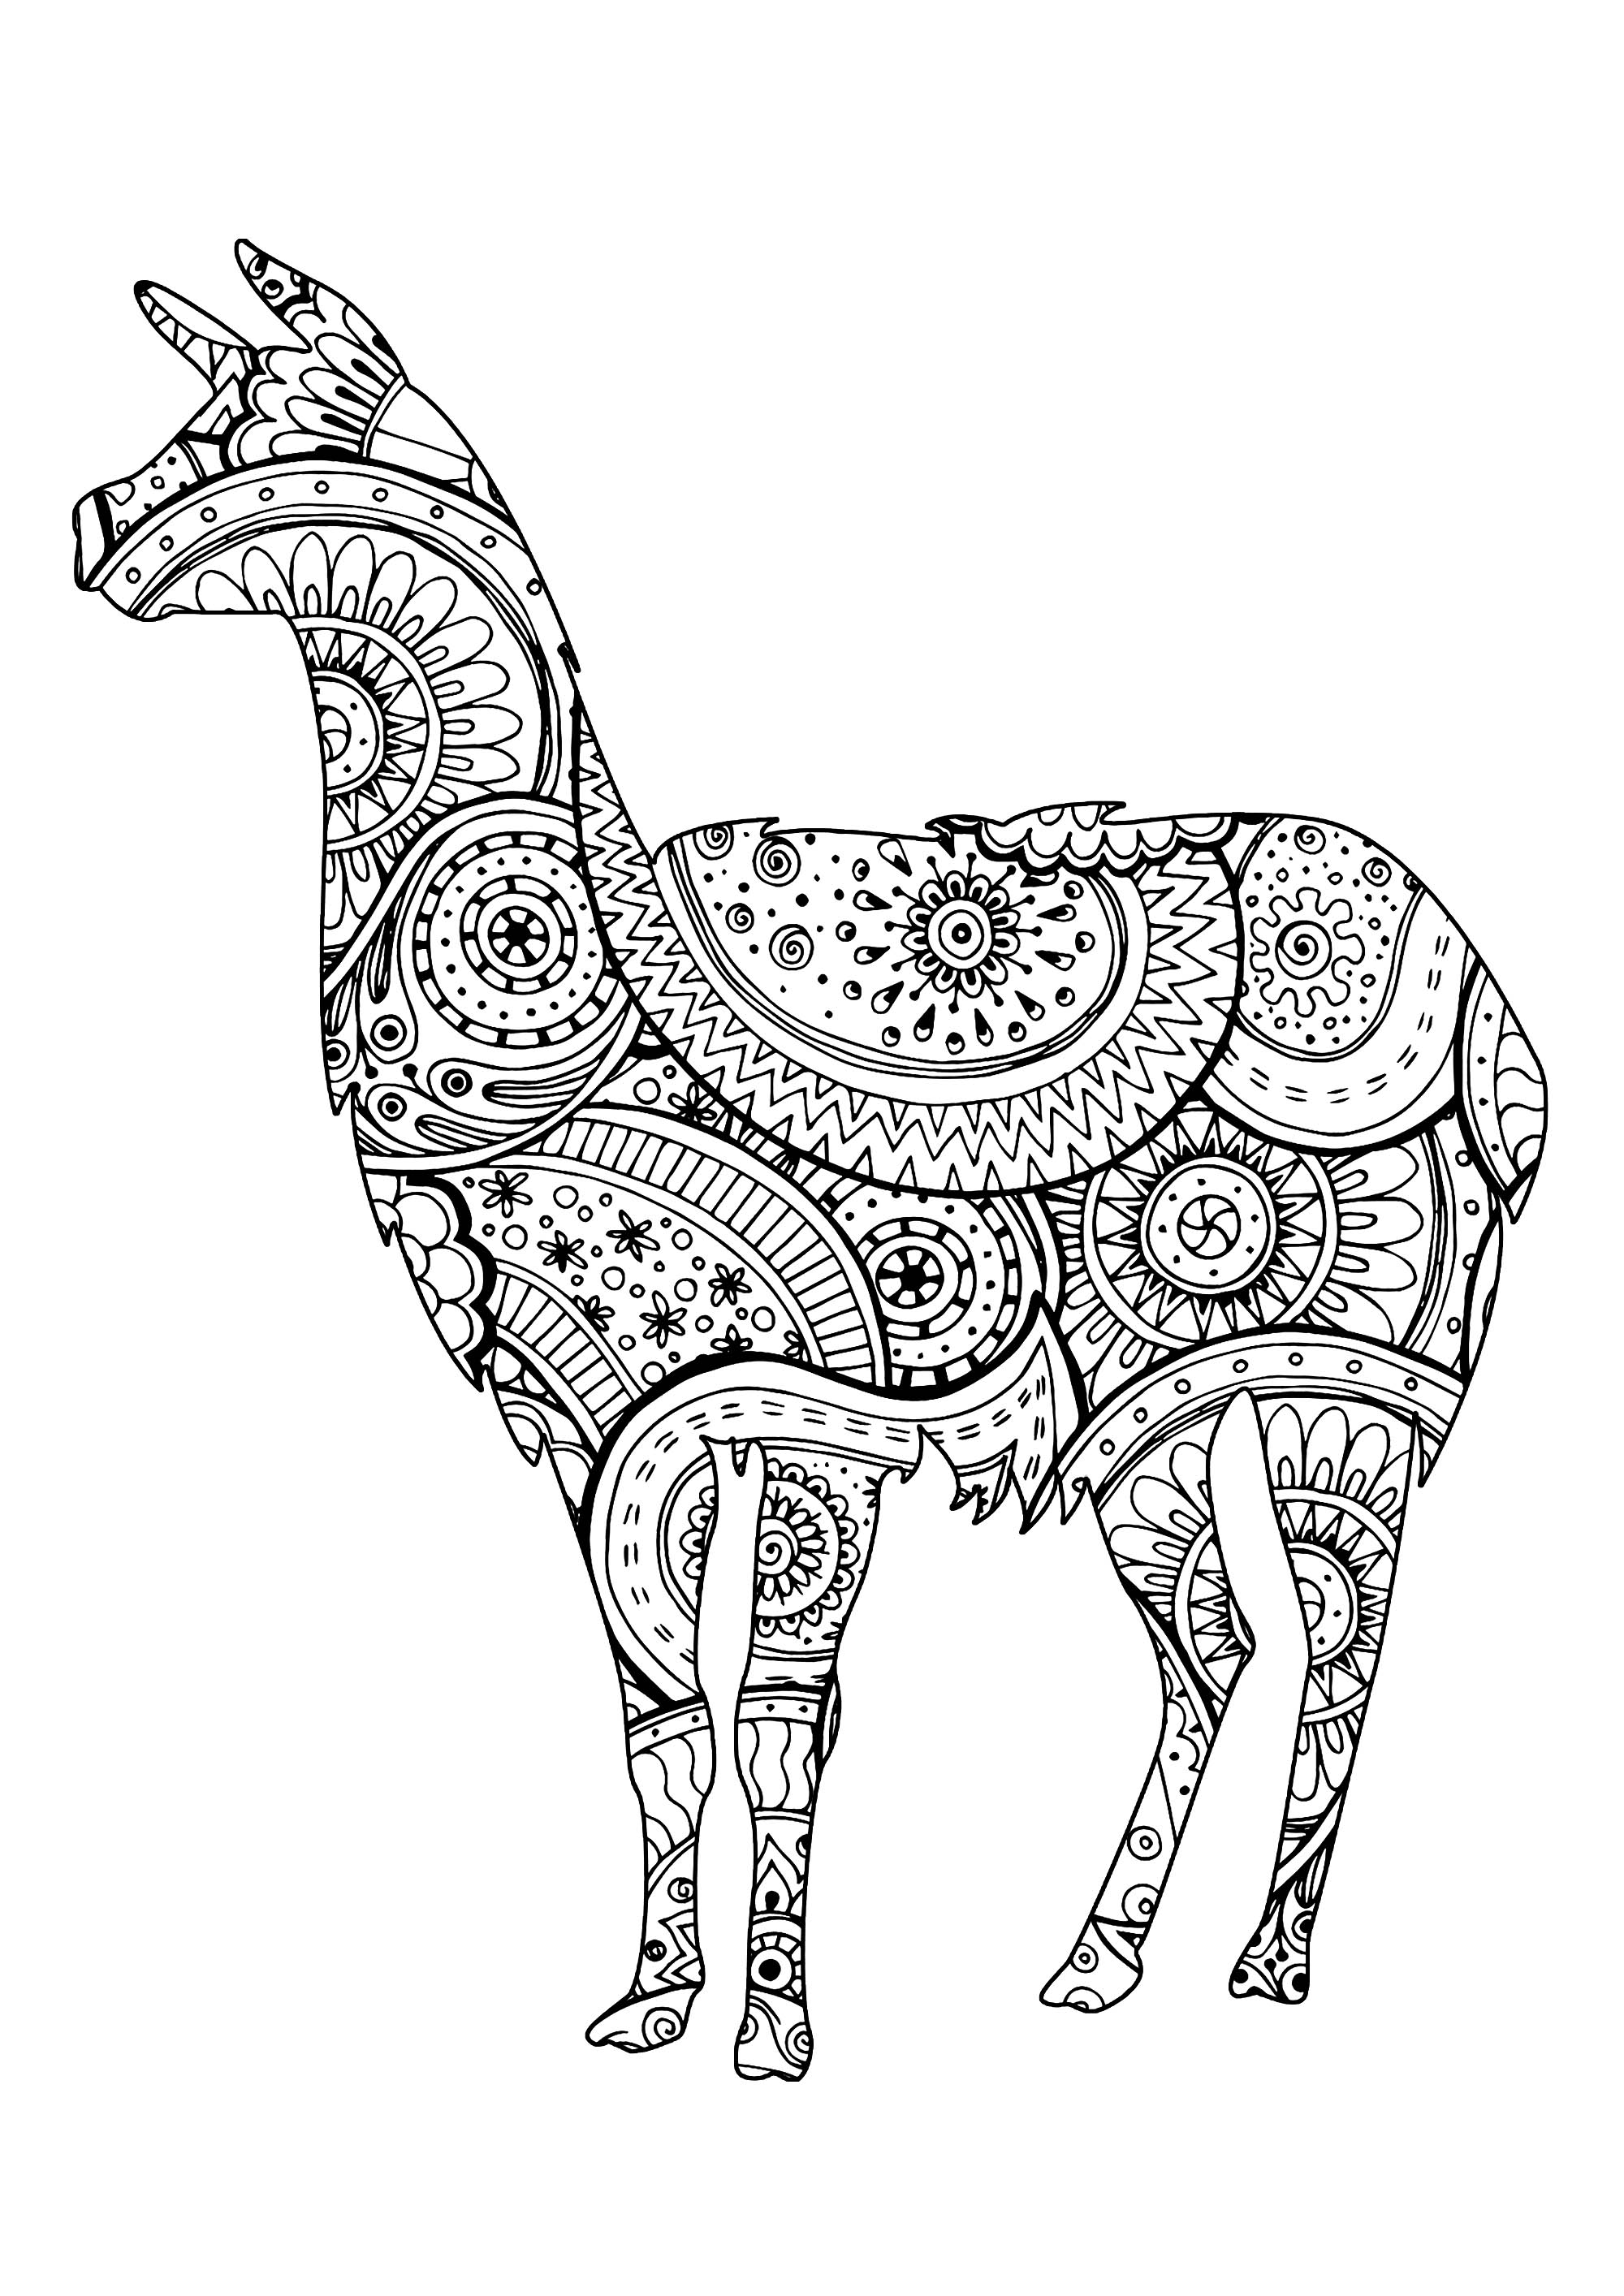 Llama Shape With Patterns Llamas Adult Coloring Pages